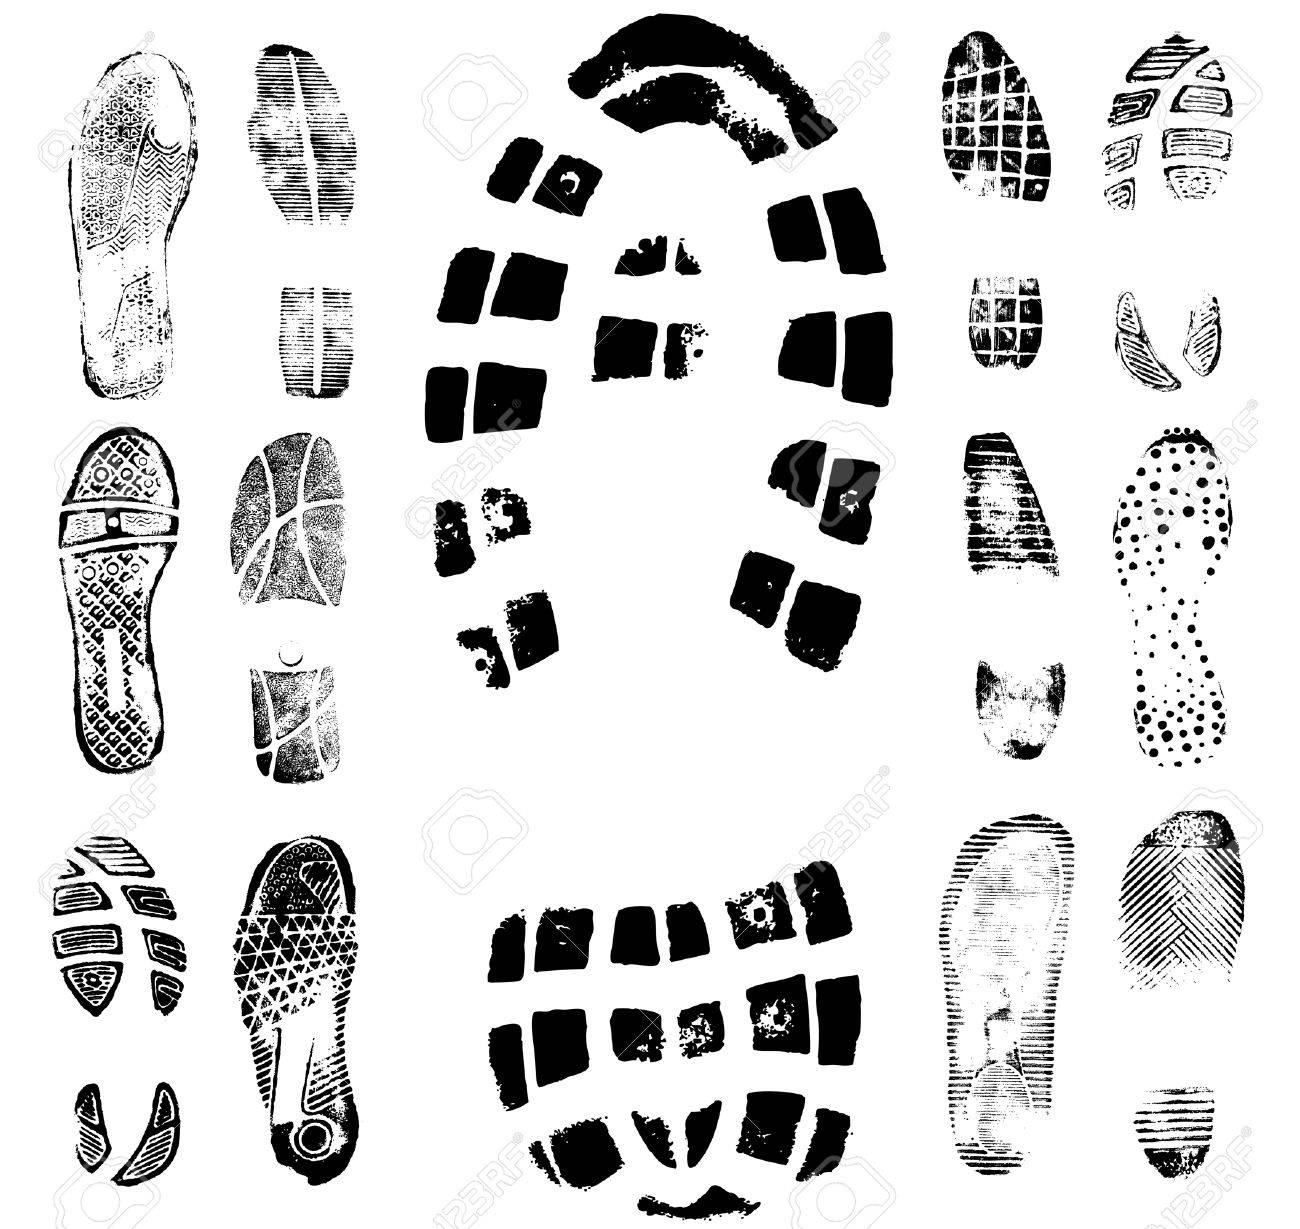 Vector illustration of various footprint shoeprint traces. Collection number 2. - 4045980